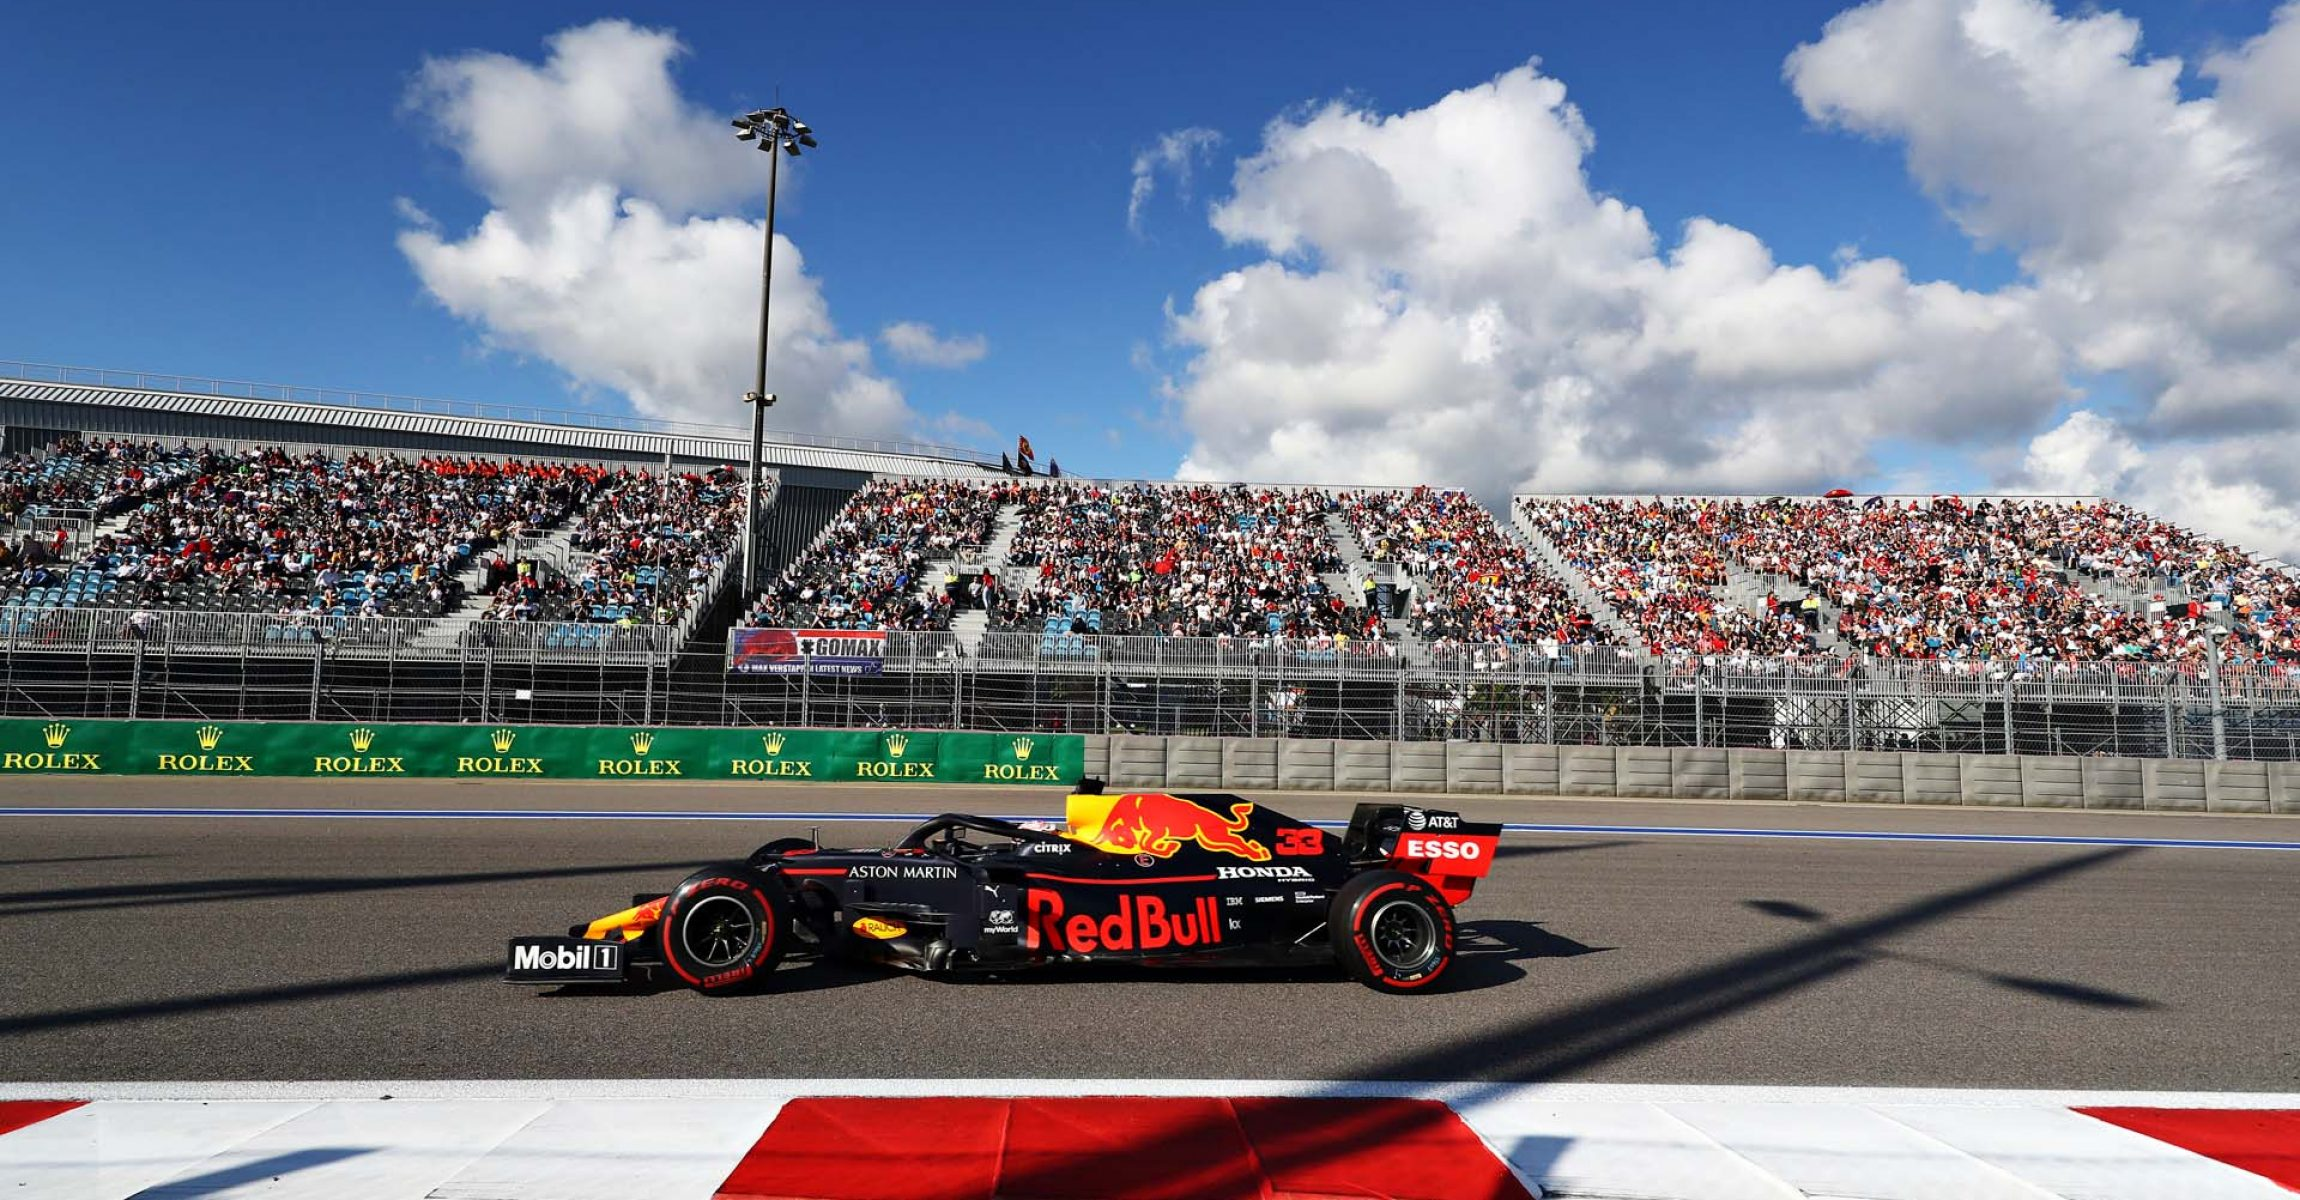 SOCHI, RUSSIA - SEPTEMBER 29: Max Verstappen of the Netherlands driving the (33) Aston Martin Red Bull Racing RB15 on track during the F1 Grand Prix of Russia at Sochi Autodrom on September 29, 2019 in Sochi, Russia. (Photo by Mark Thompson/Getty Images) // Getty Images / Red Bull Content Pool  // AP-21QJT3Q2W1W11 // Usage for editorial use only //